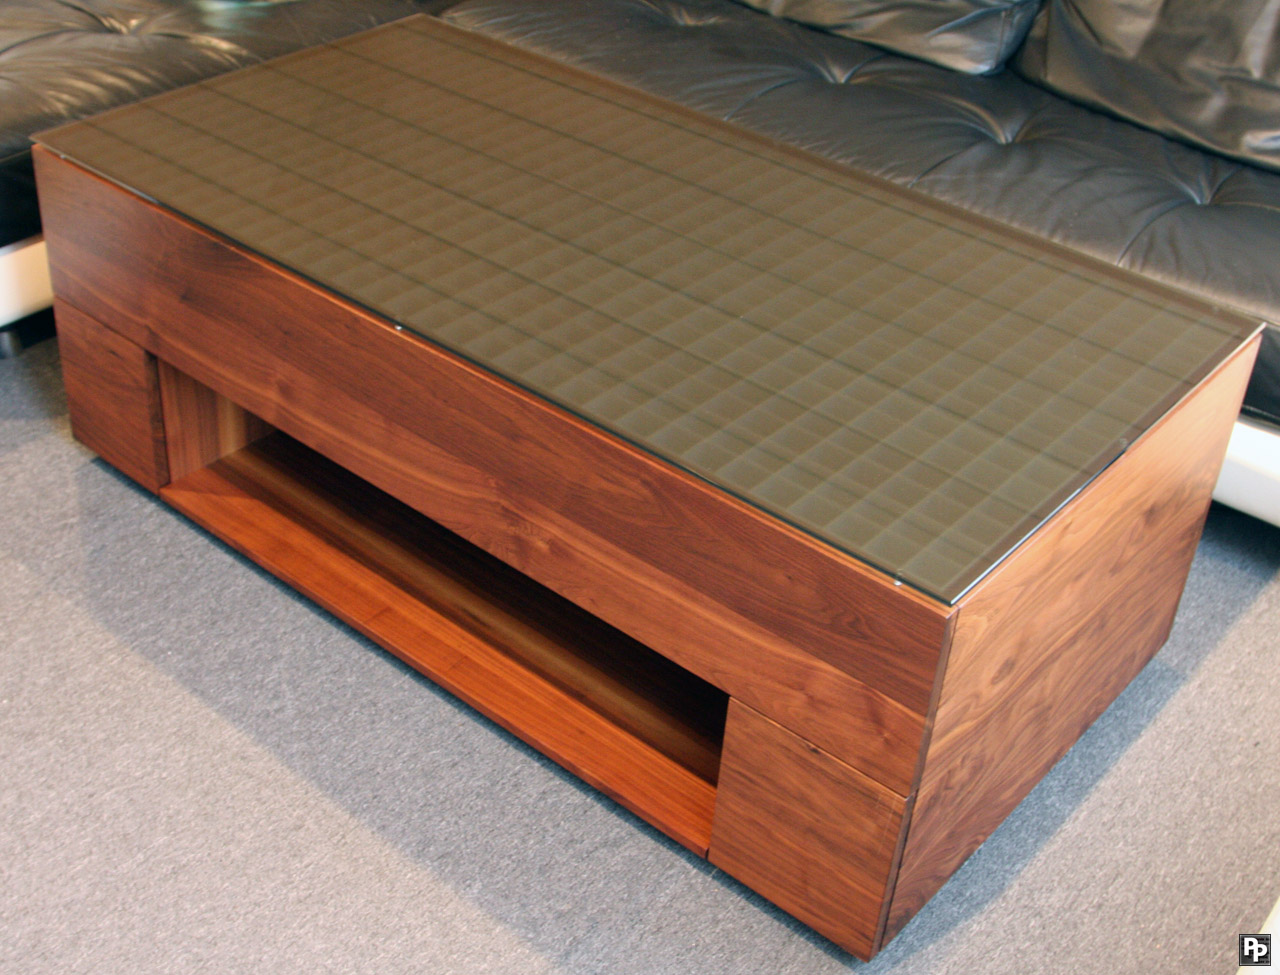 Lovely The Assembled Coffee Table Doing Itu0027s Main Job In My Living Room: Being A  Table